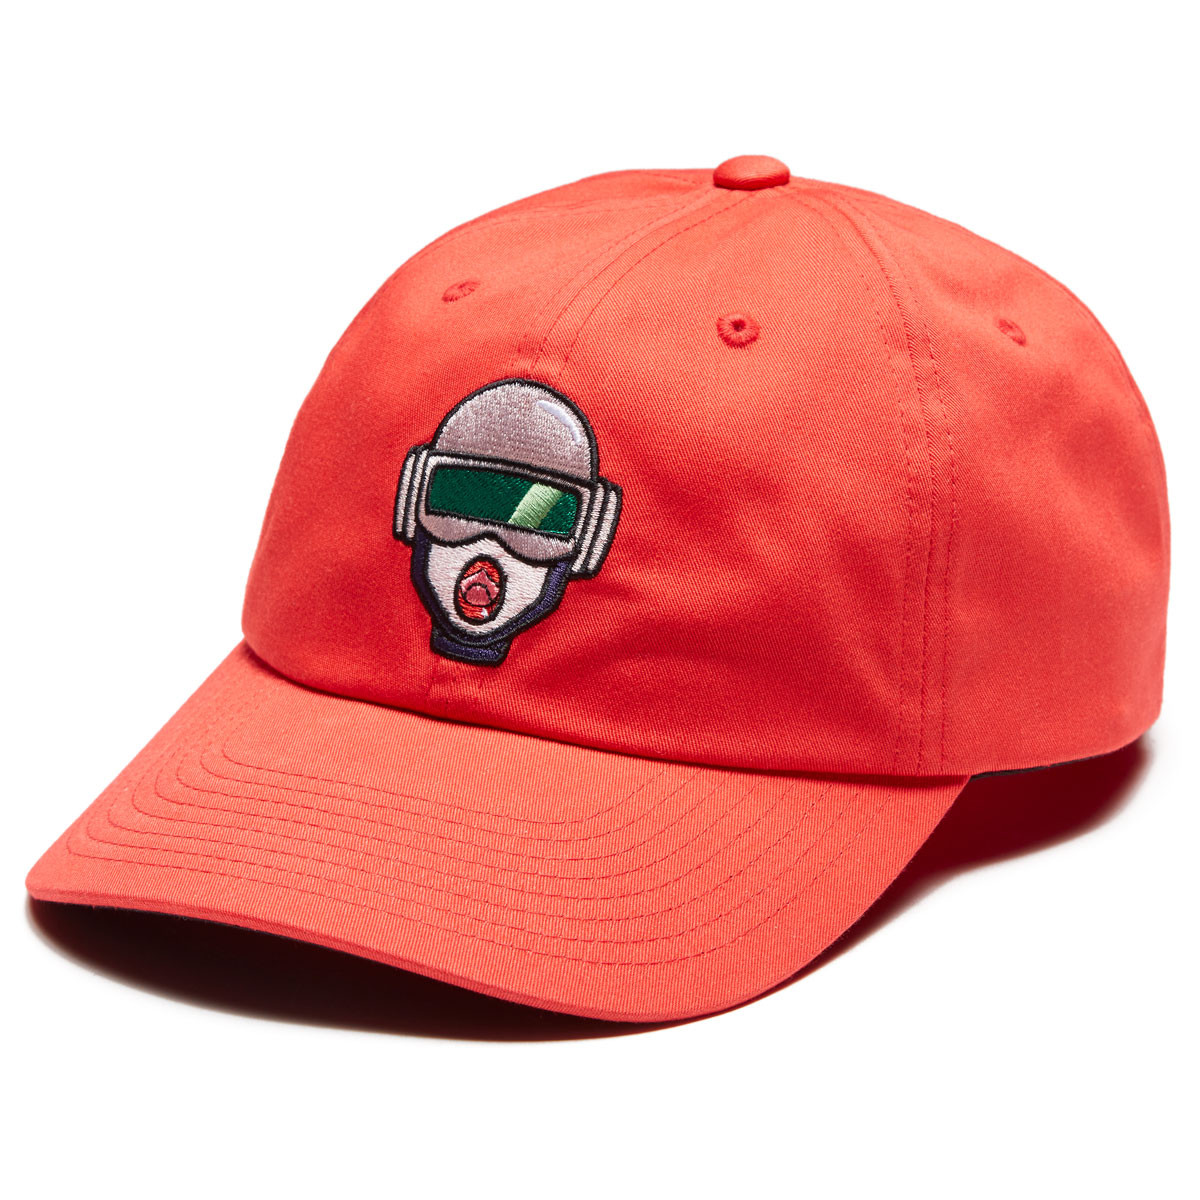 d5a8298fd9116 Primitive x Rick and Morty Gwen Dad Hat - Red